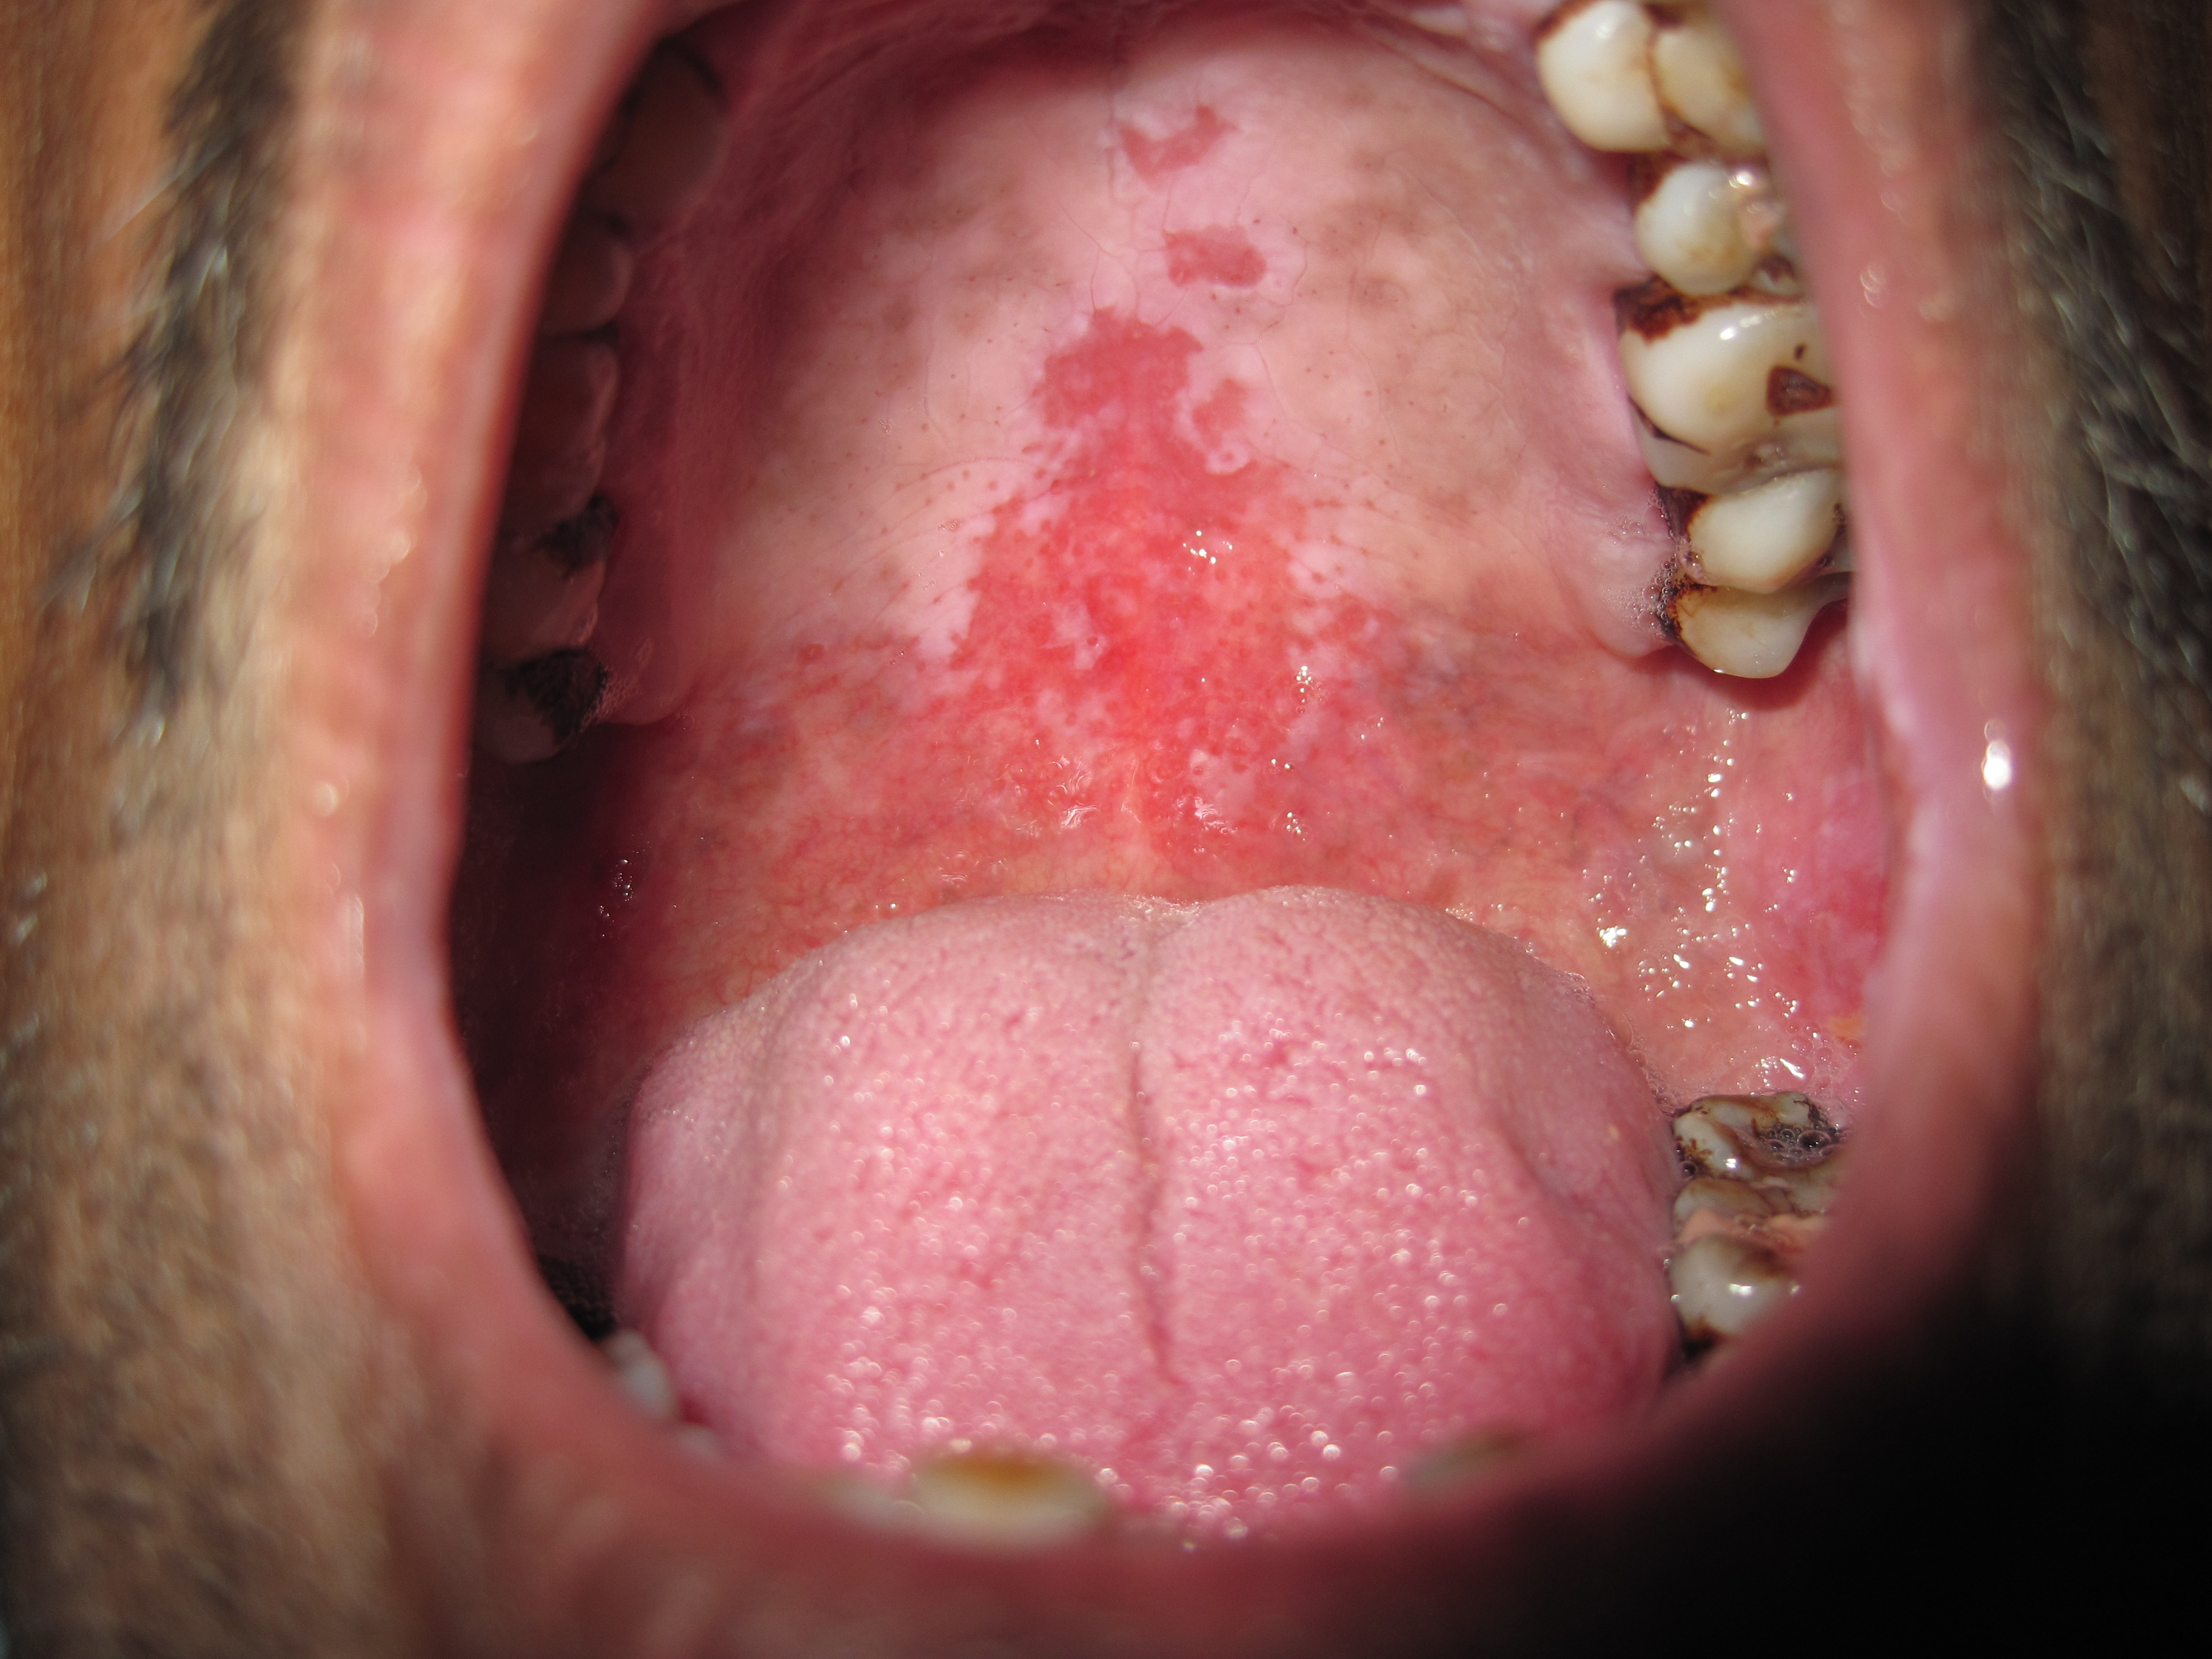 Pictures of Hard Palate Cancer http://wacky5.com/hard-palate-lesions-pic.html